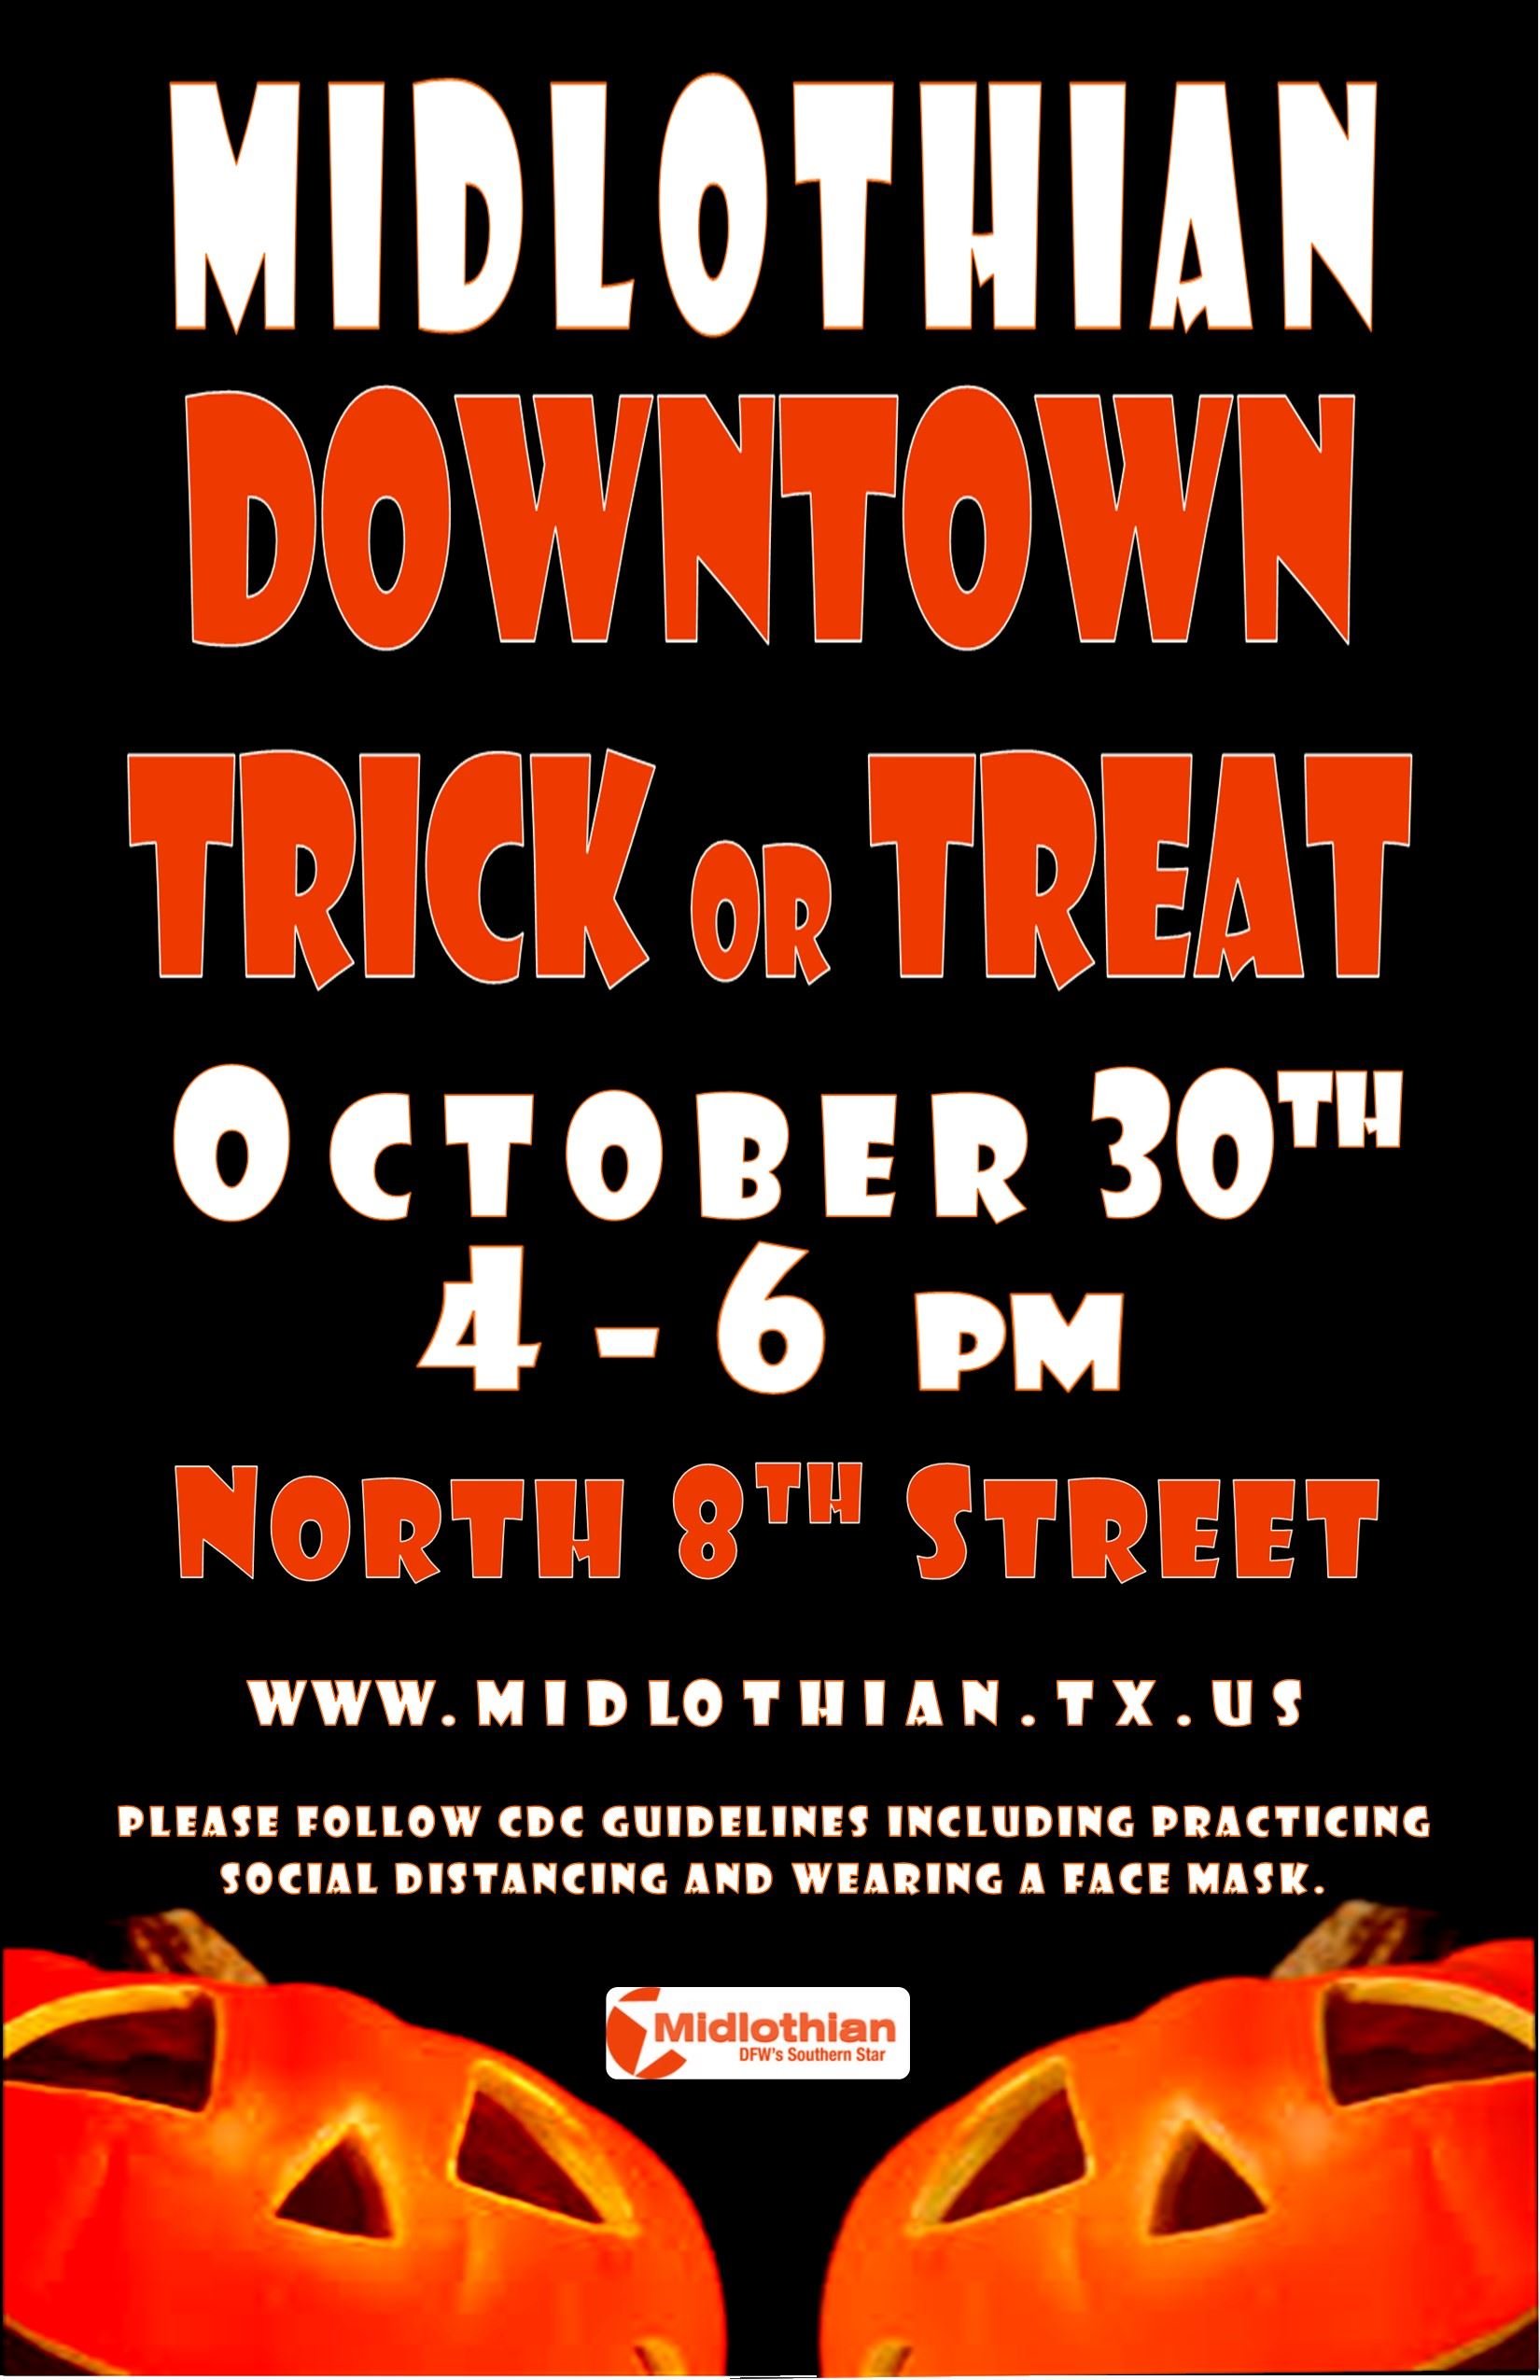 black/orange/white with jackolanterns and event date/time/location